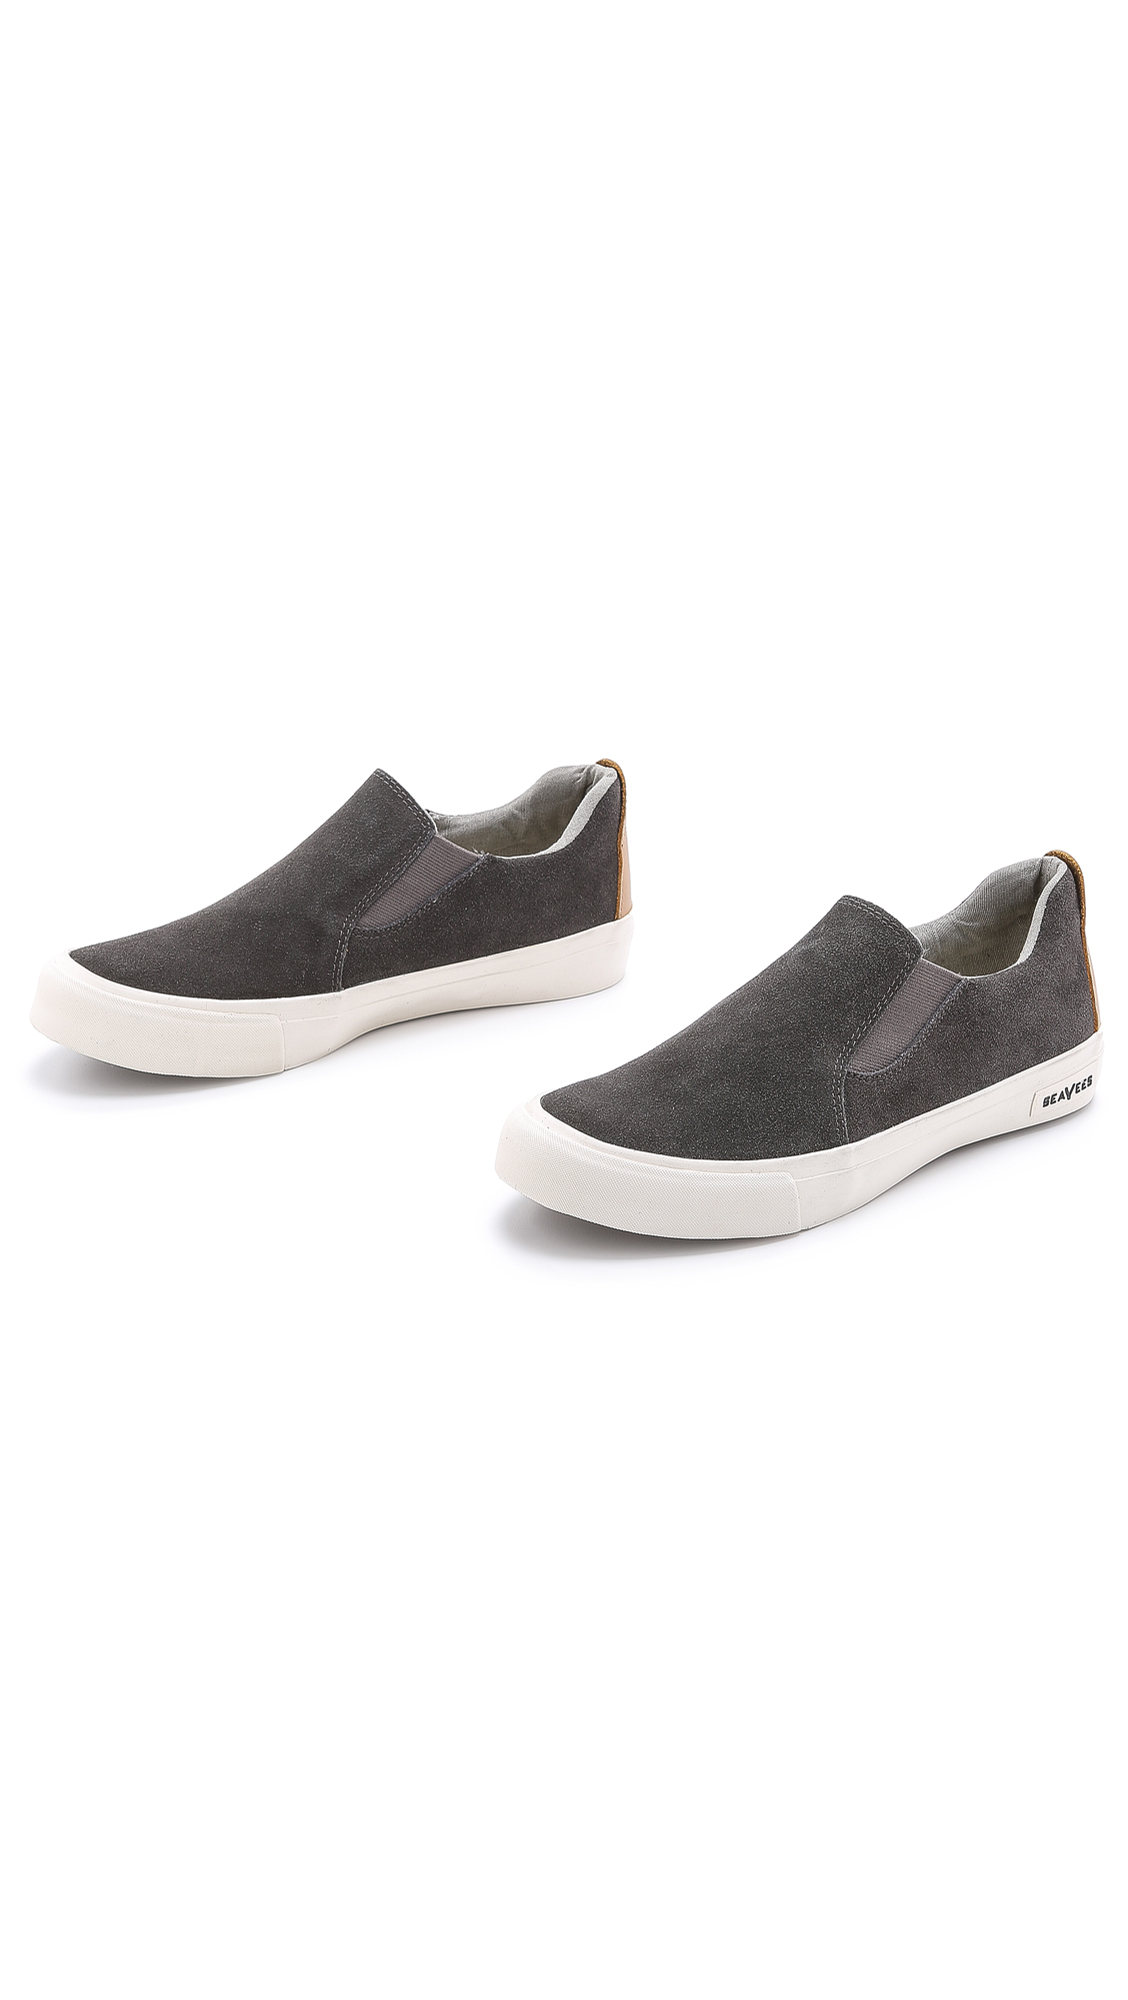 Seavees Shoes Sizing